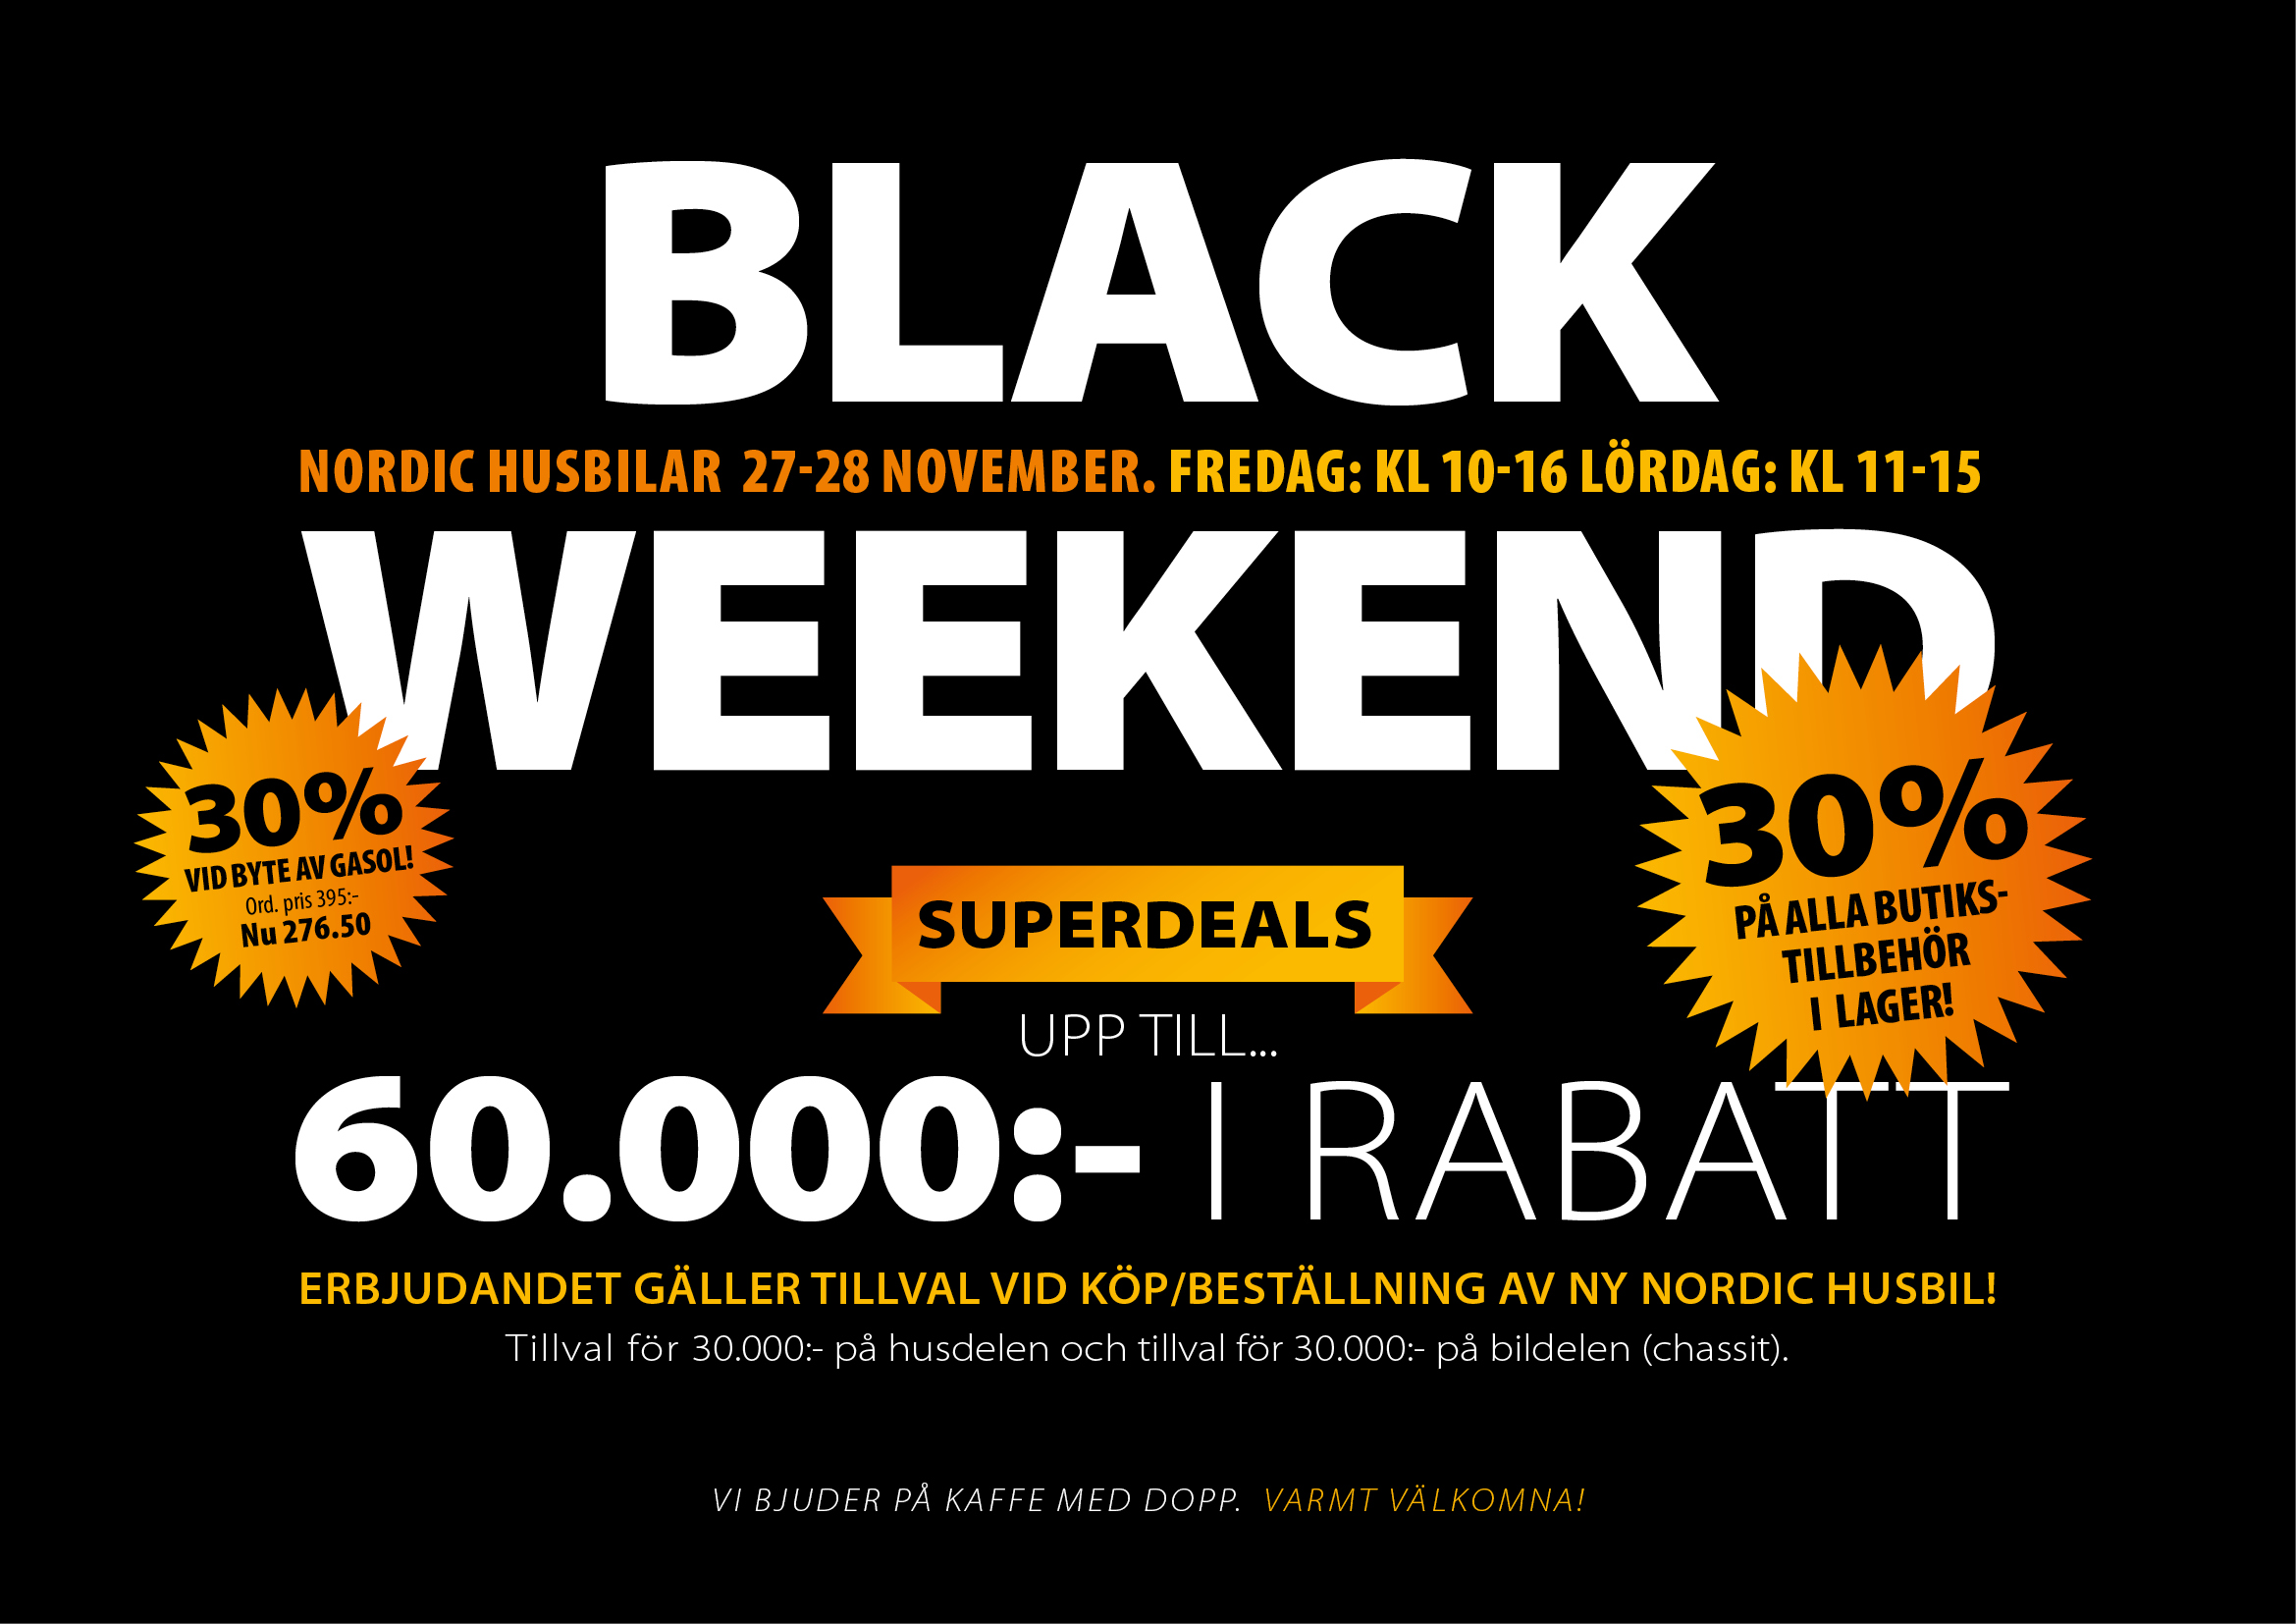 Black Weekend på Nordic Husbilar!